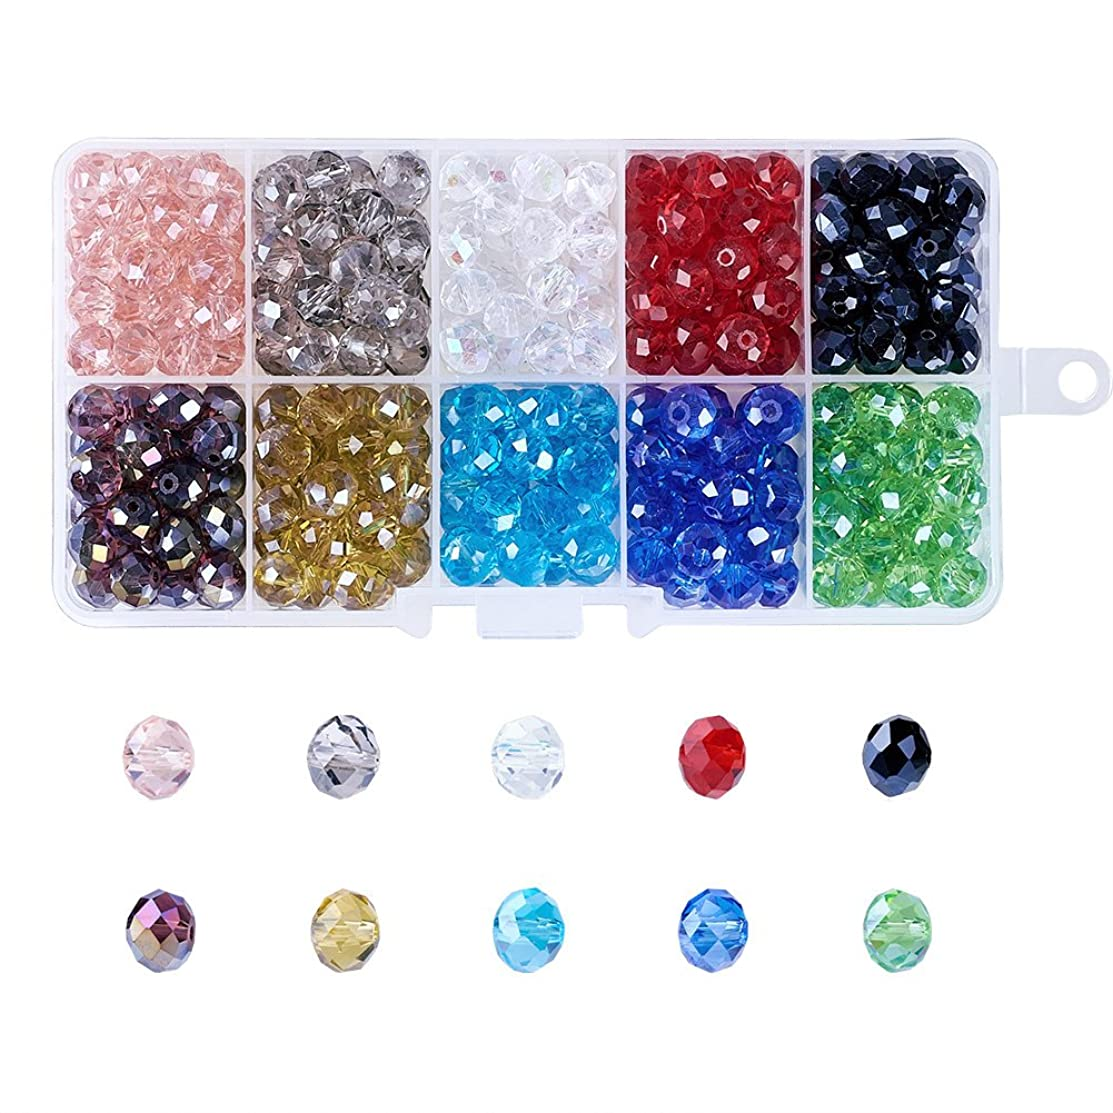 Kissitty 8mm 10 Colors Transparent Crystal Faceted Glass Briolette Rondelle Spacer Loose Beads Pearl Luster Plated About 300pcs with Storage Box